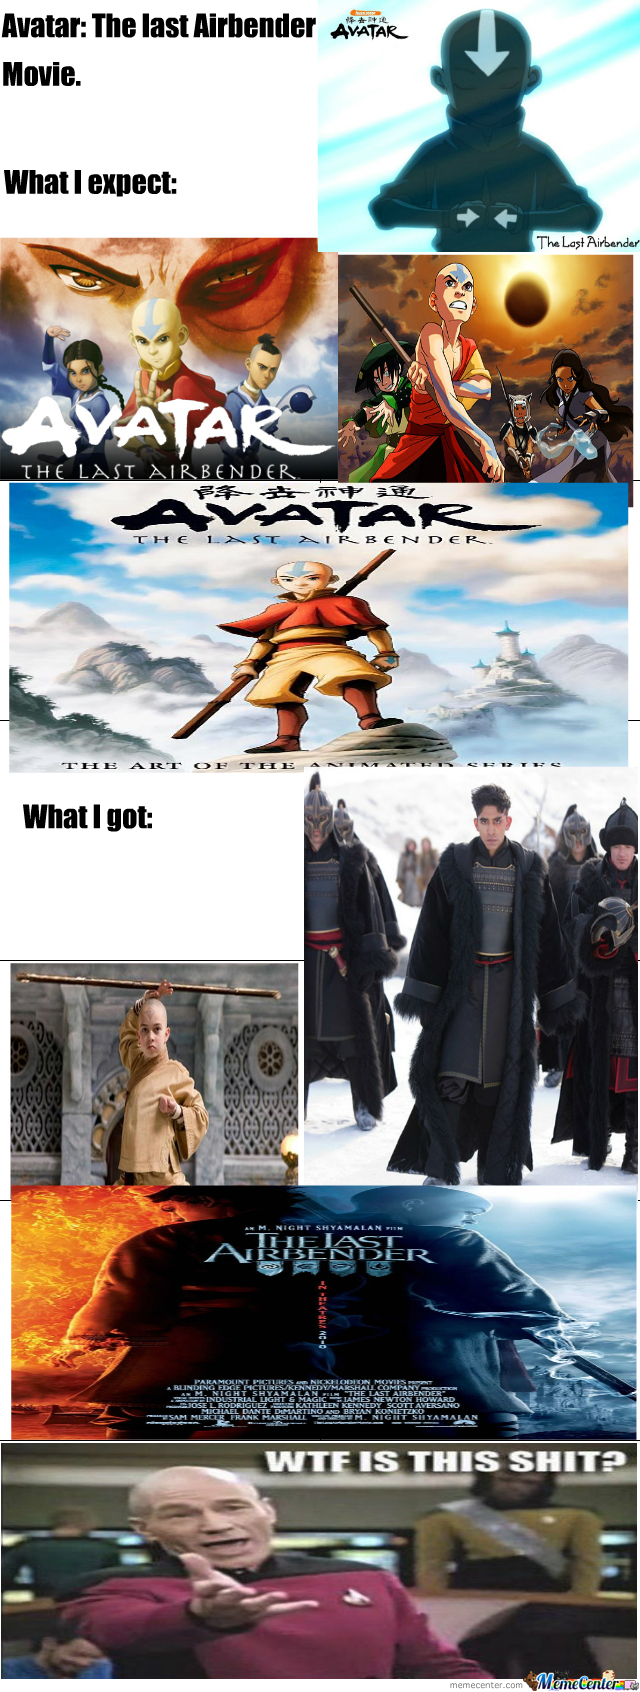 Avatar The Last Airbender Movie by nightmare - Meme Center